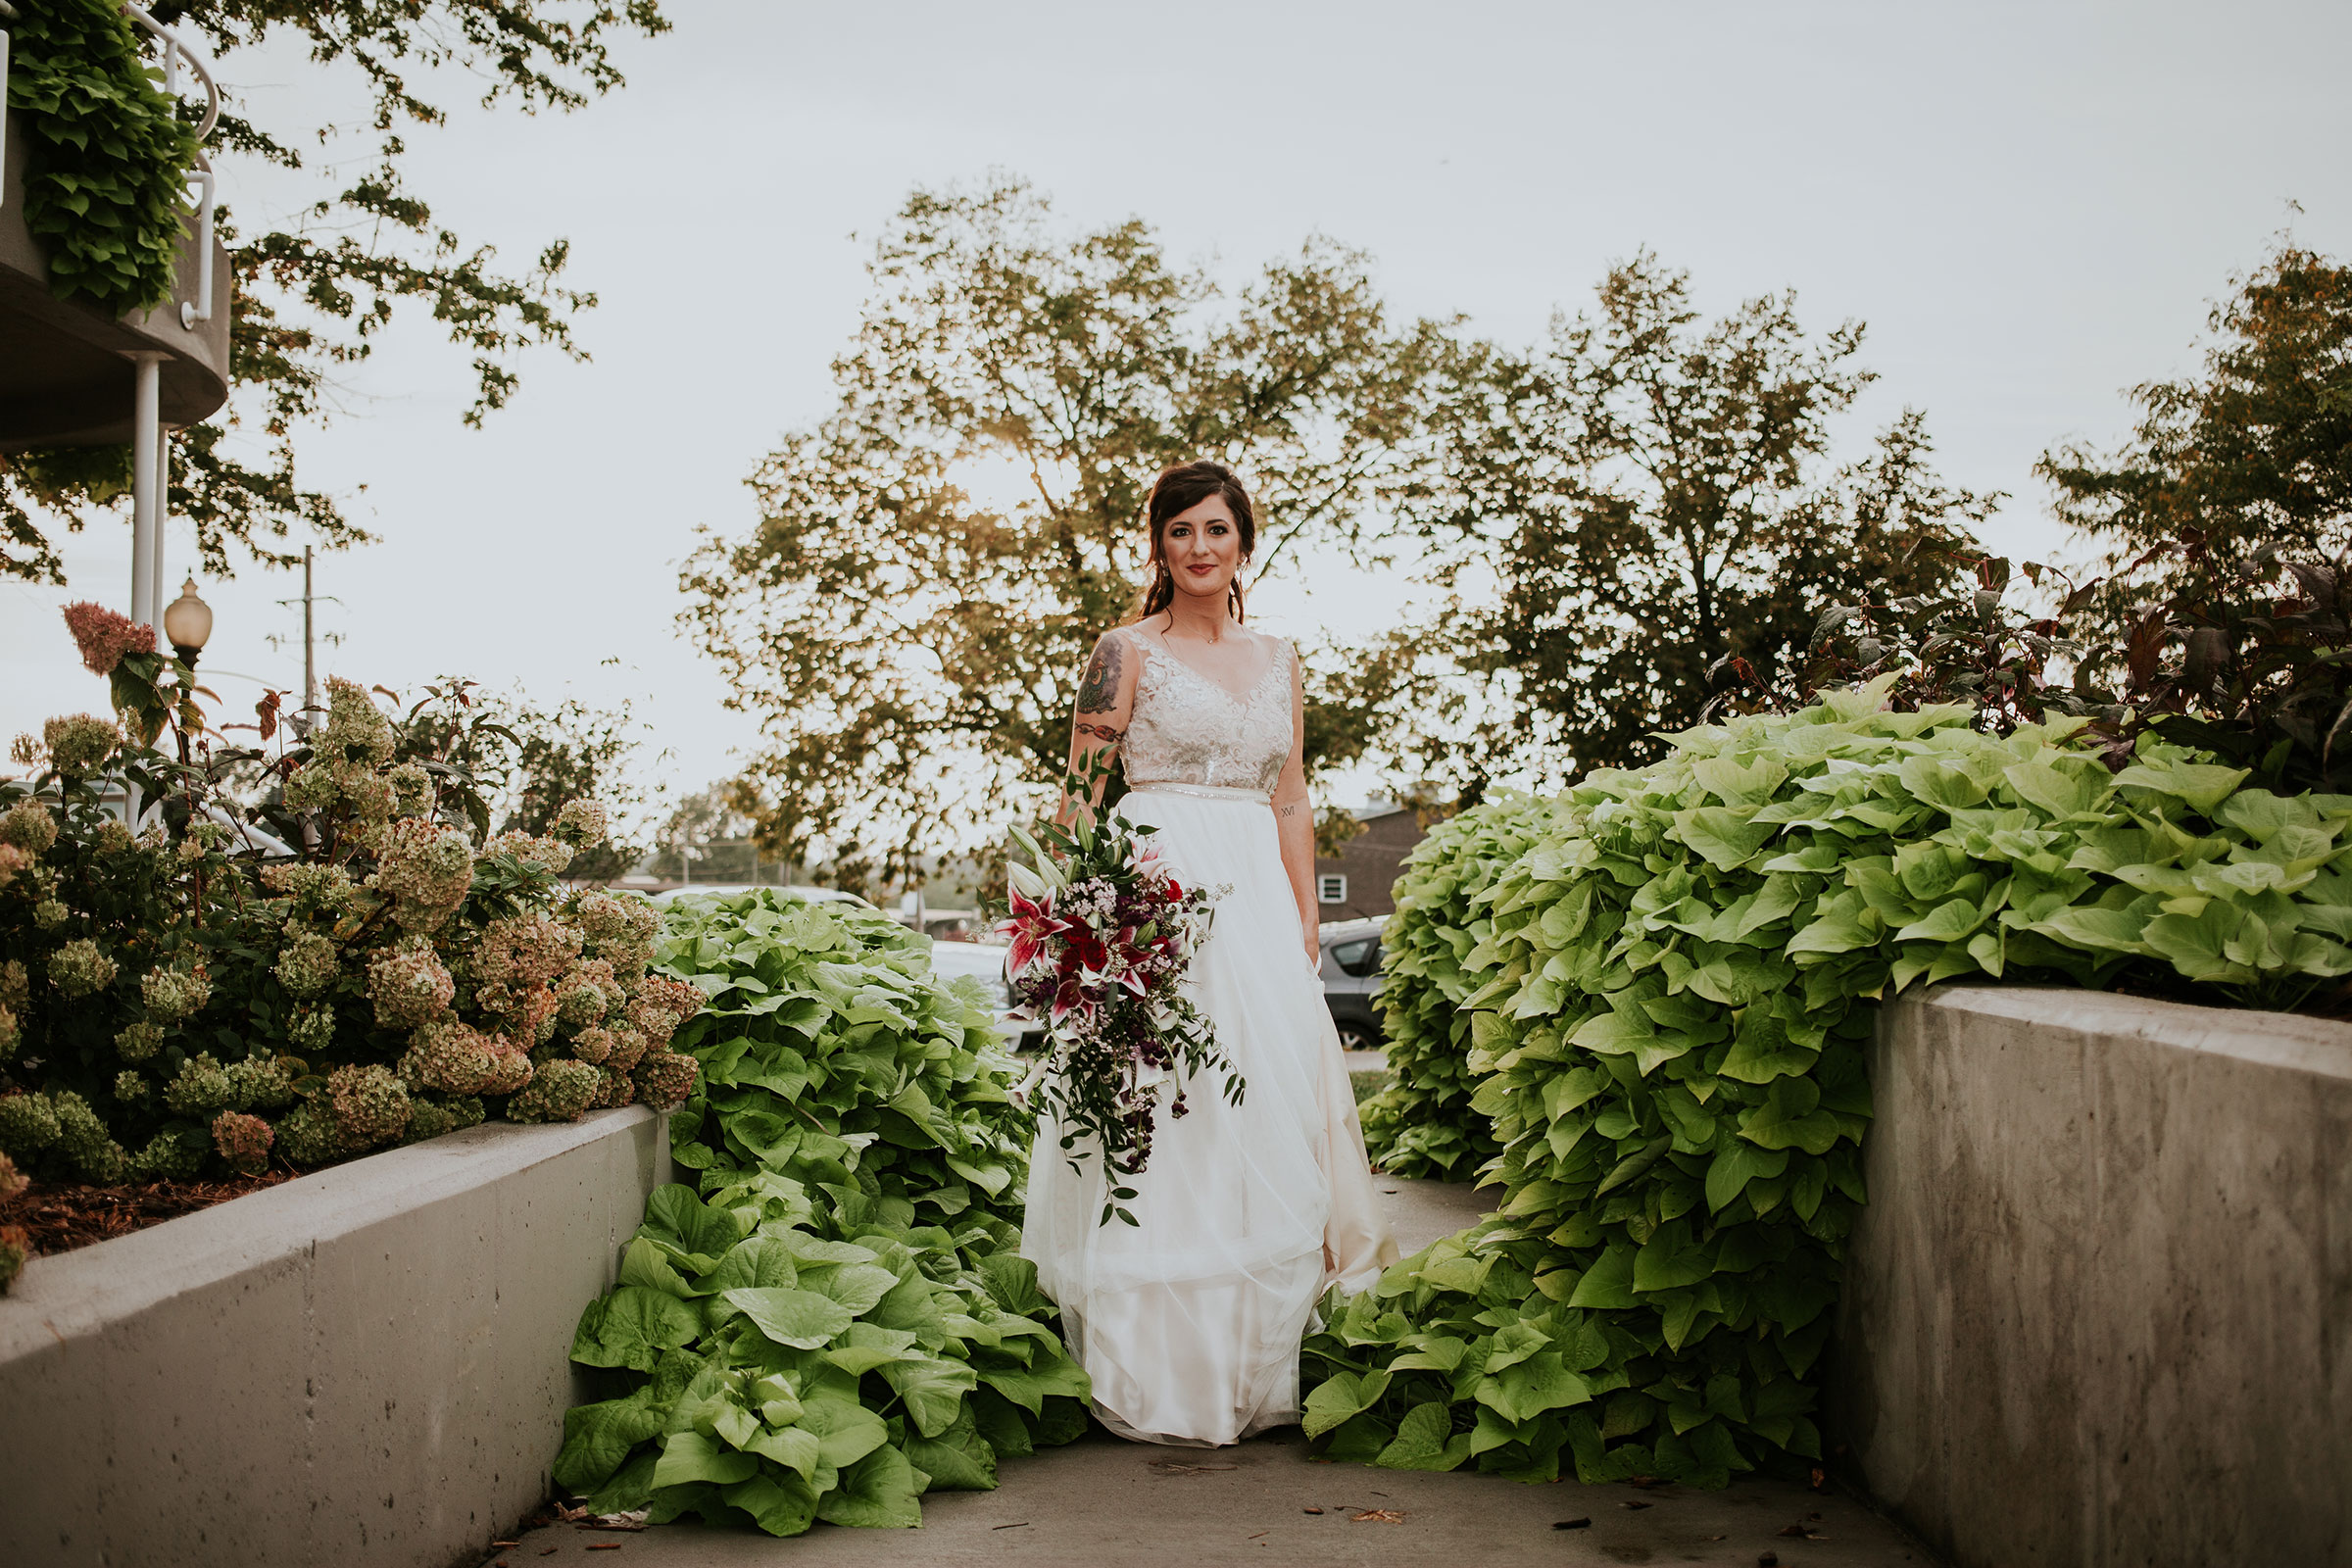 bride-standing-amoung-plants-pella-plaza-desmoines-iowa-raelyn-ramey-photography.jpg